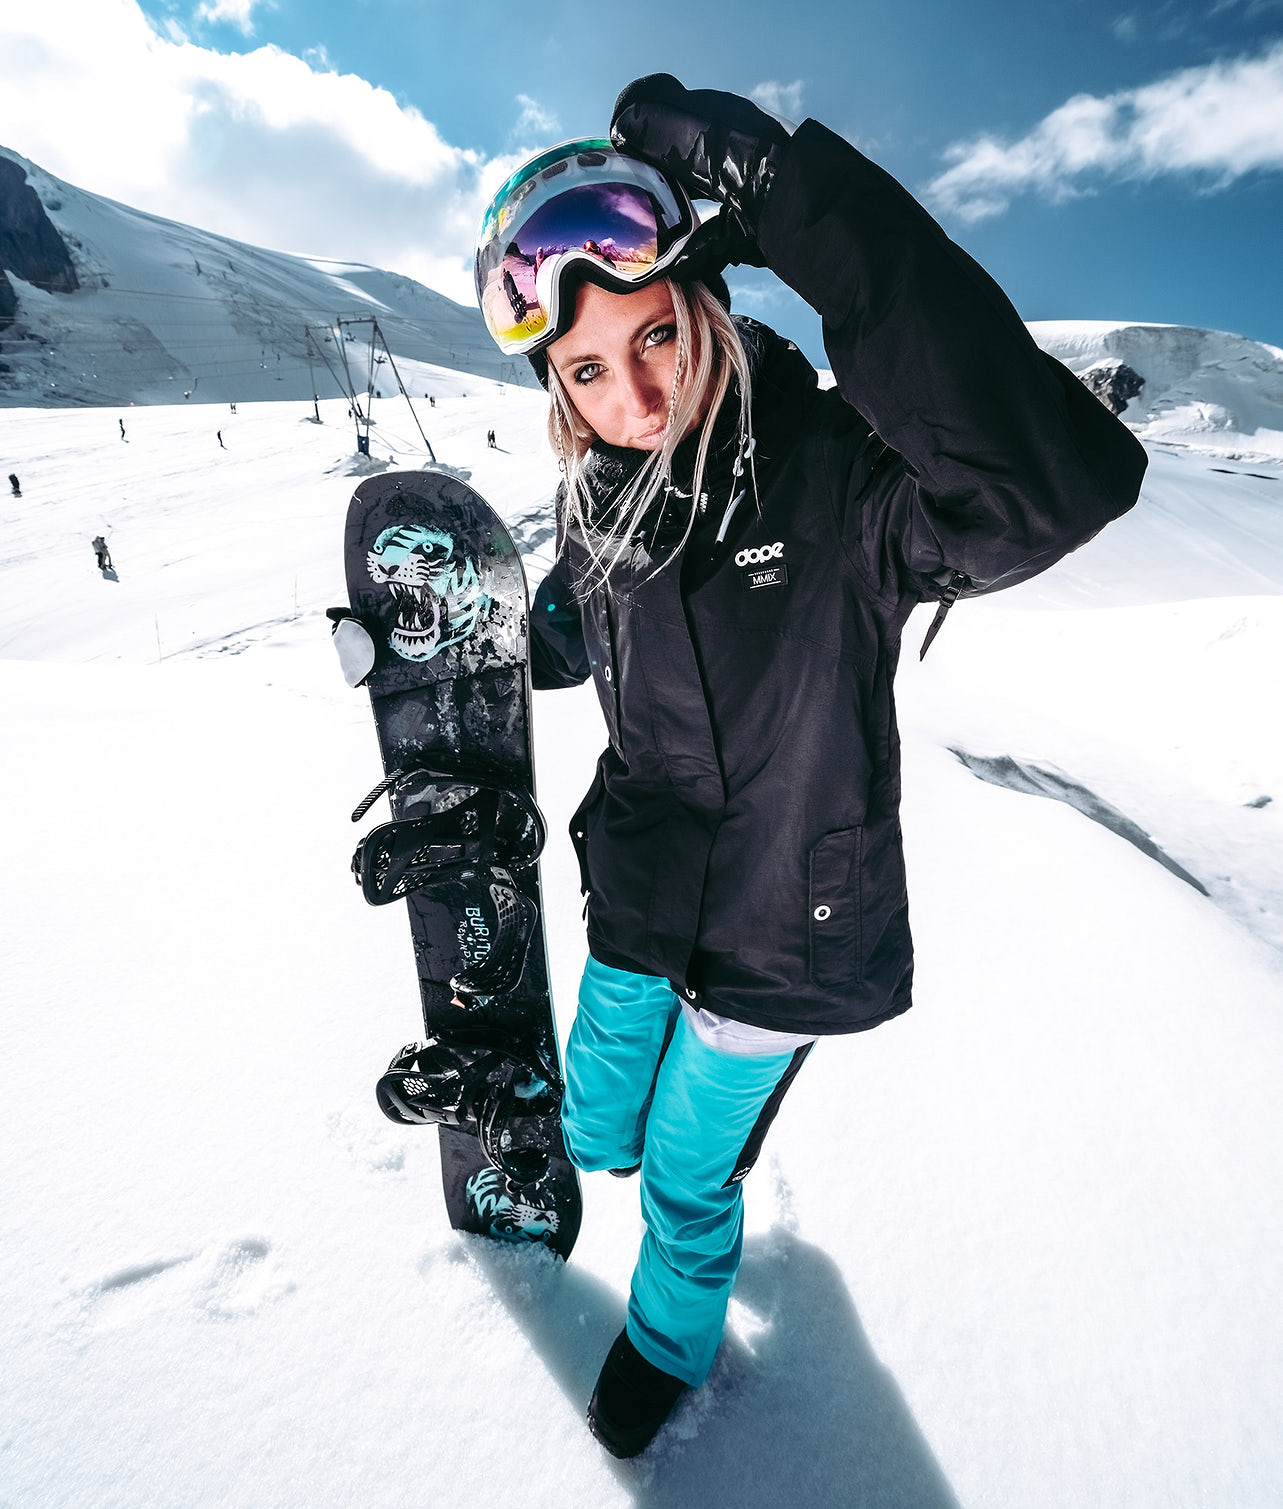 Buy Adept W 18 Snowboard Jacket from Dope at Ridestore.com - Always free shipping, free returns and 30 days money back guarantee